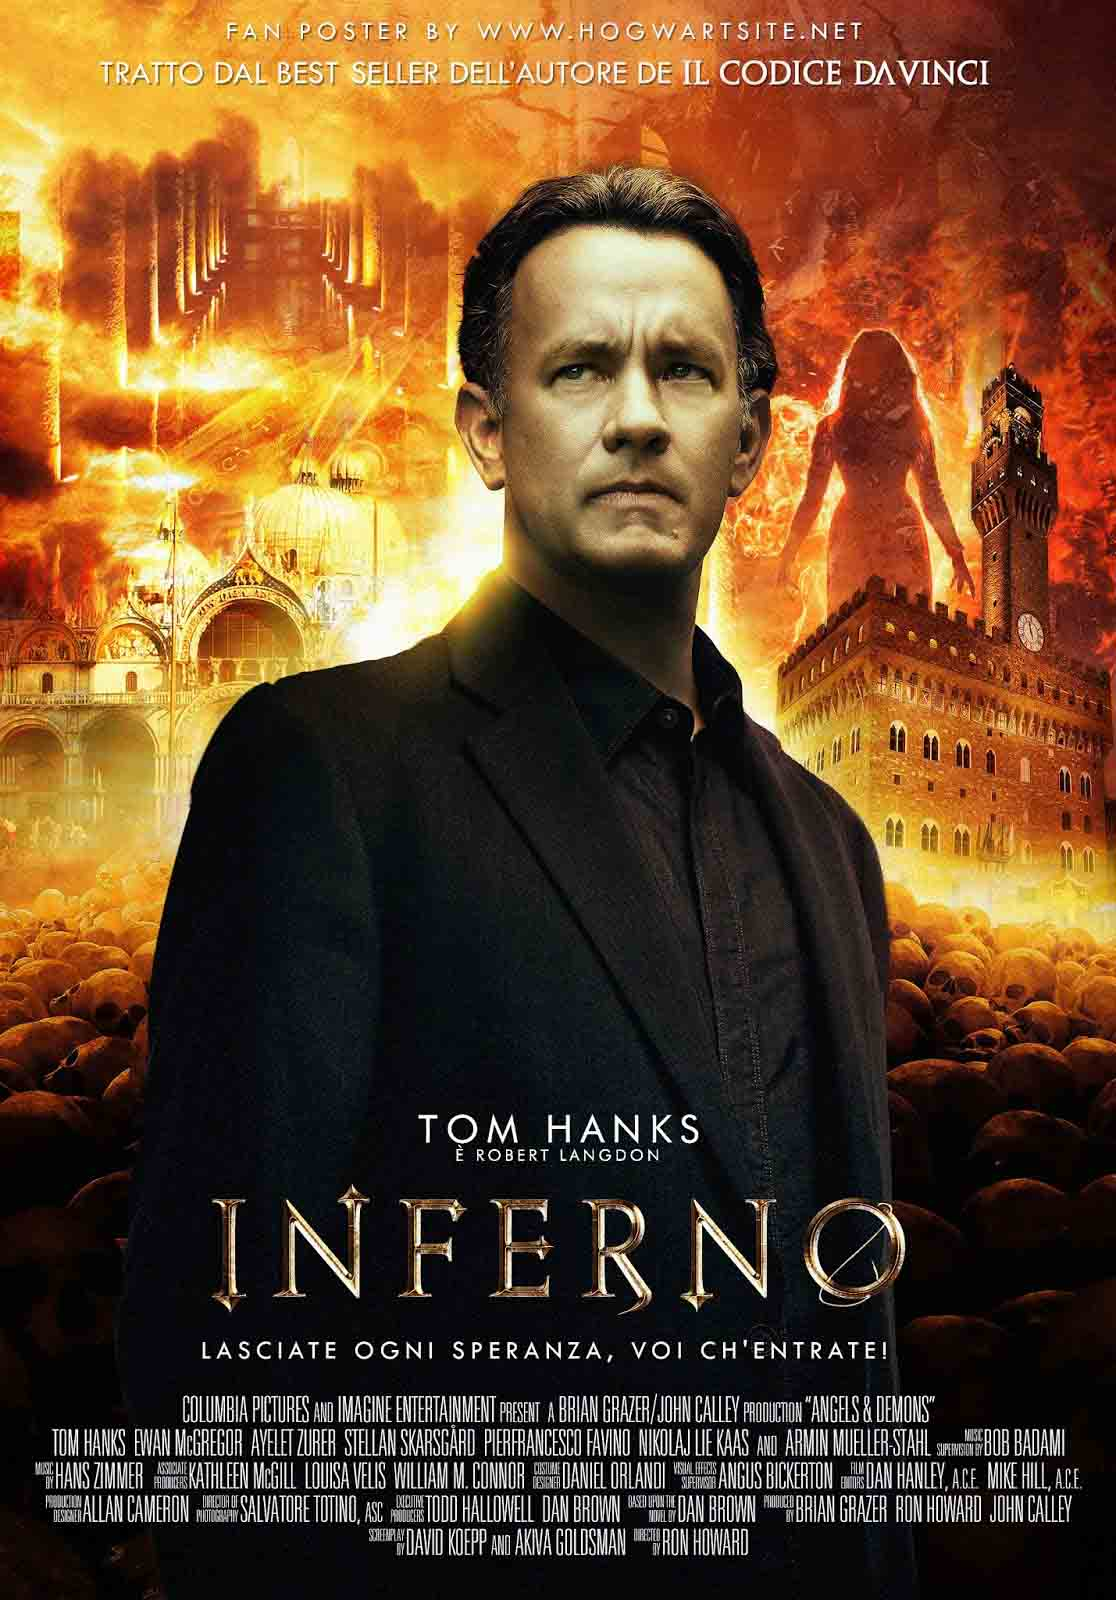 Inferno 2016 tom hanks wallpapers